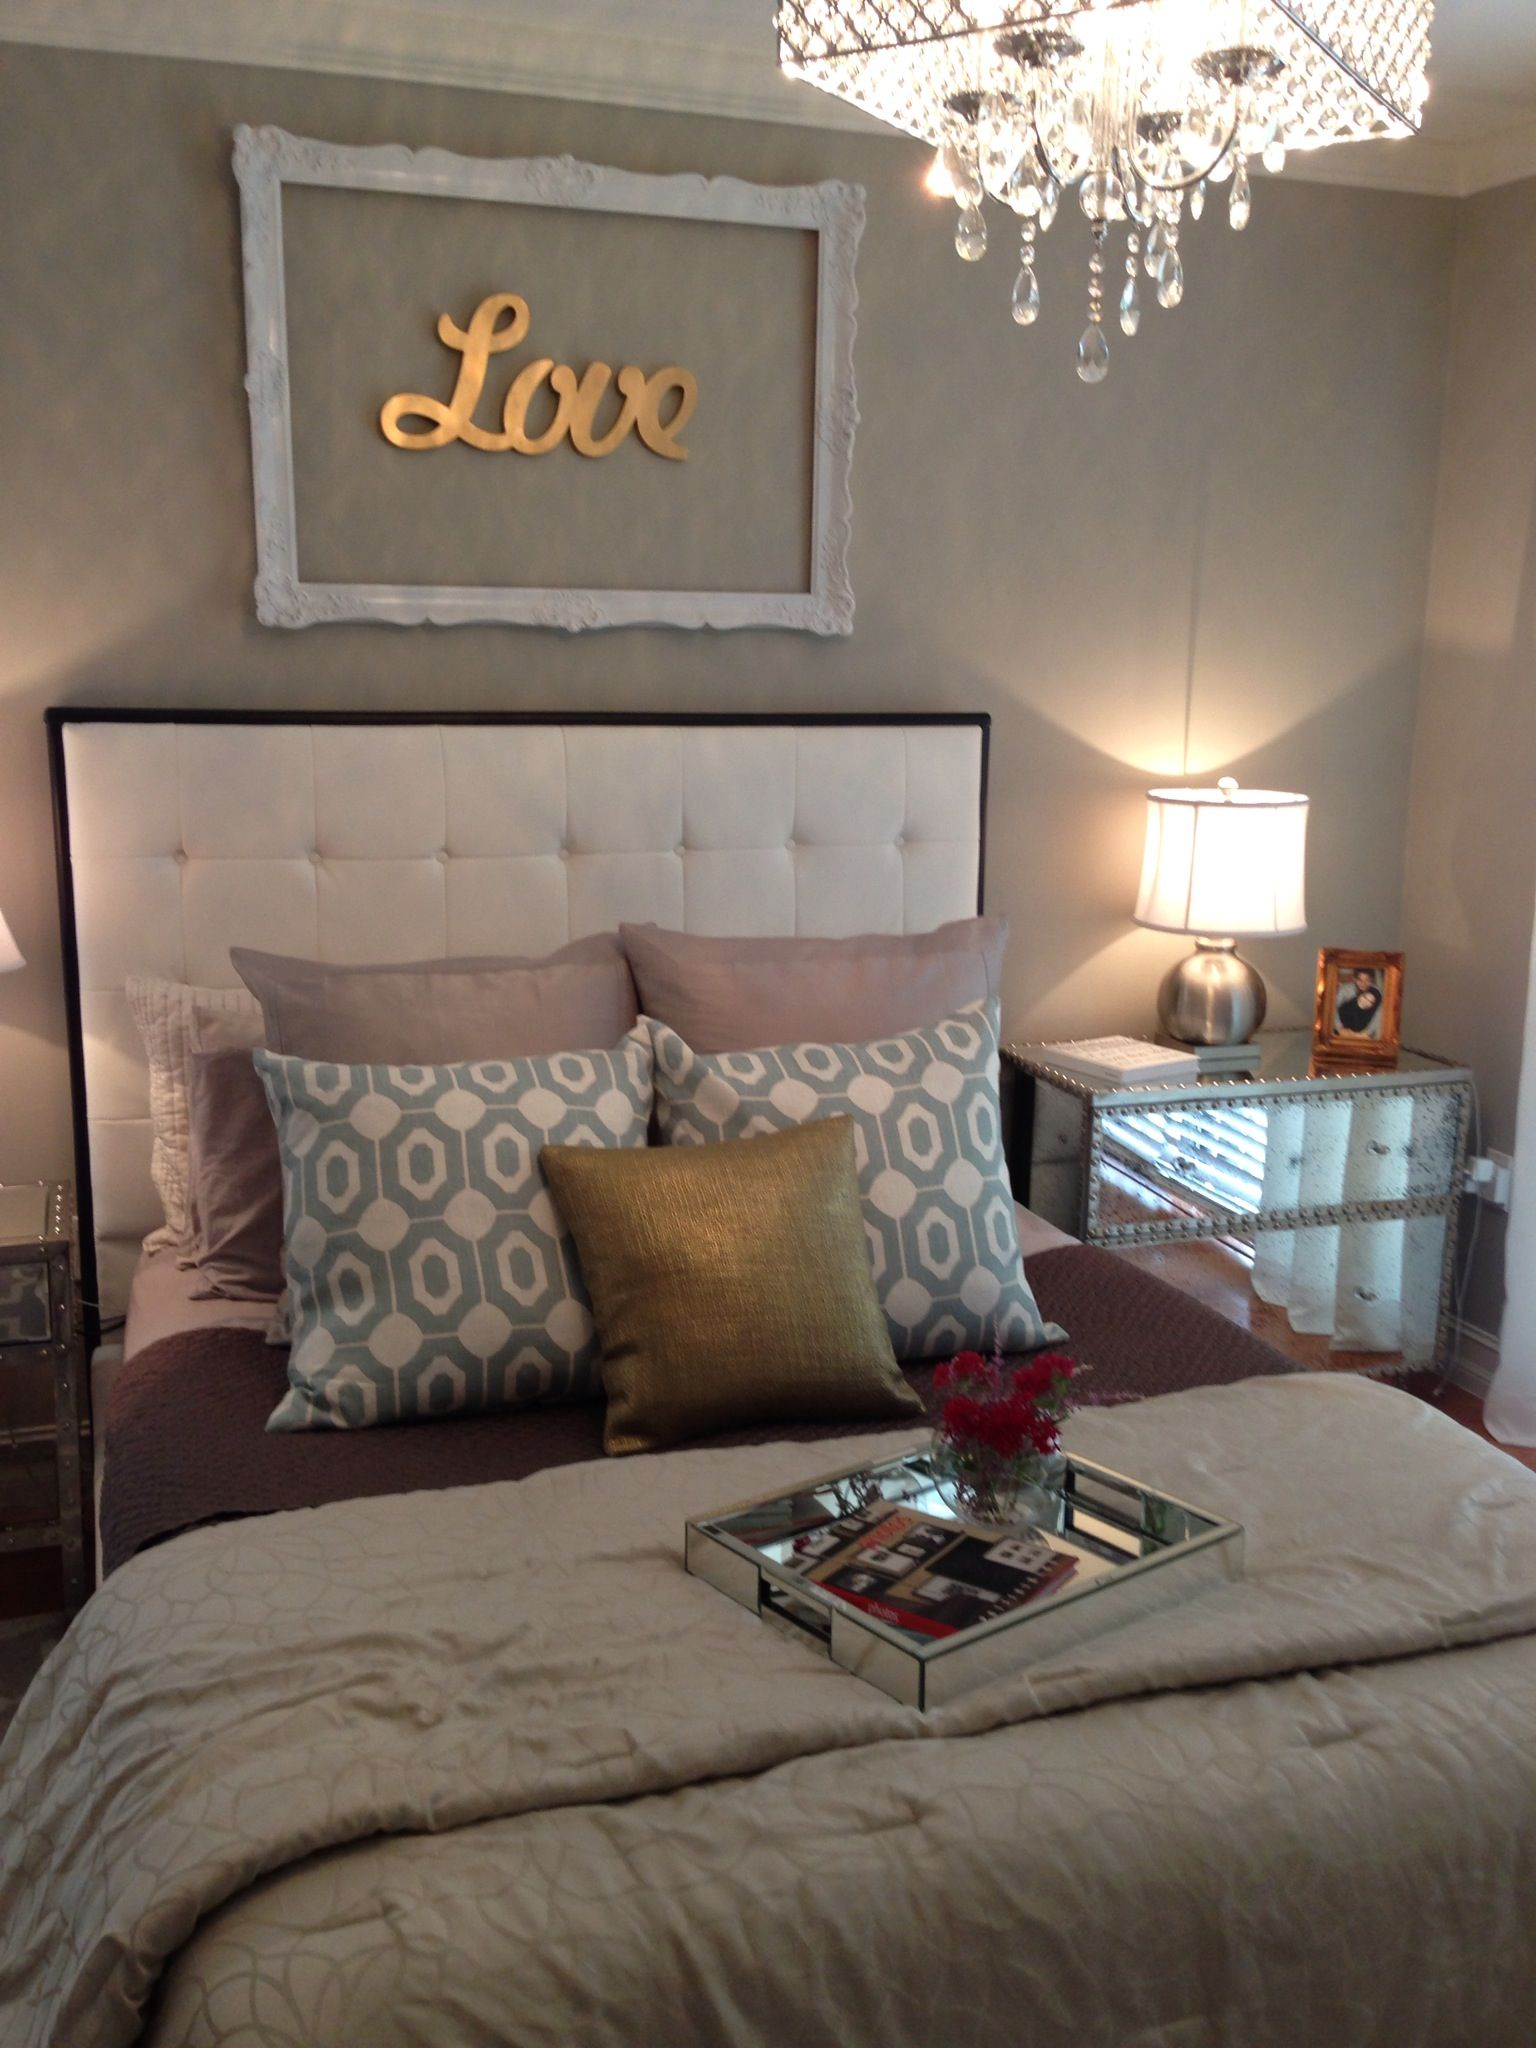 Bedroom wall decorating ideas picture frames - Bedrooms